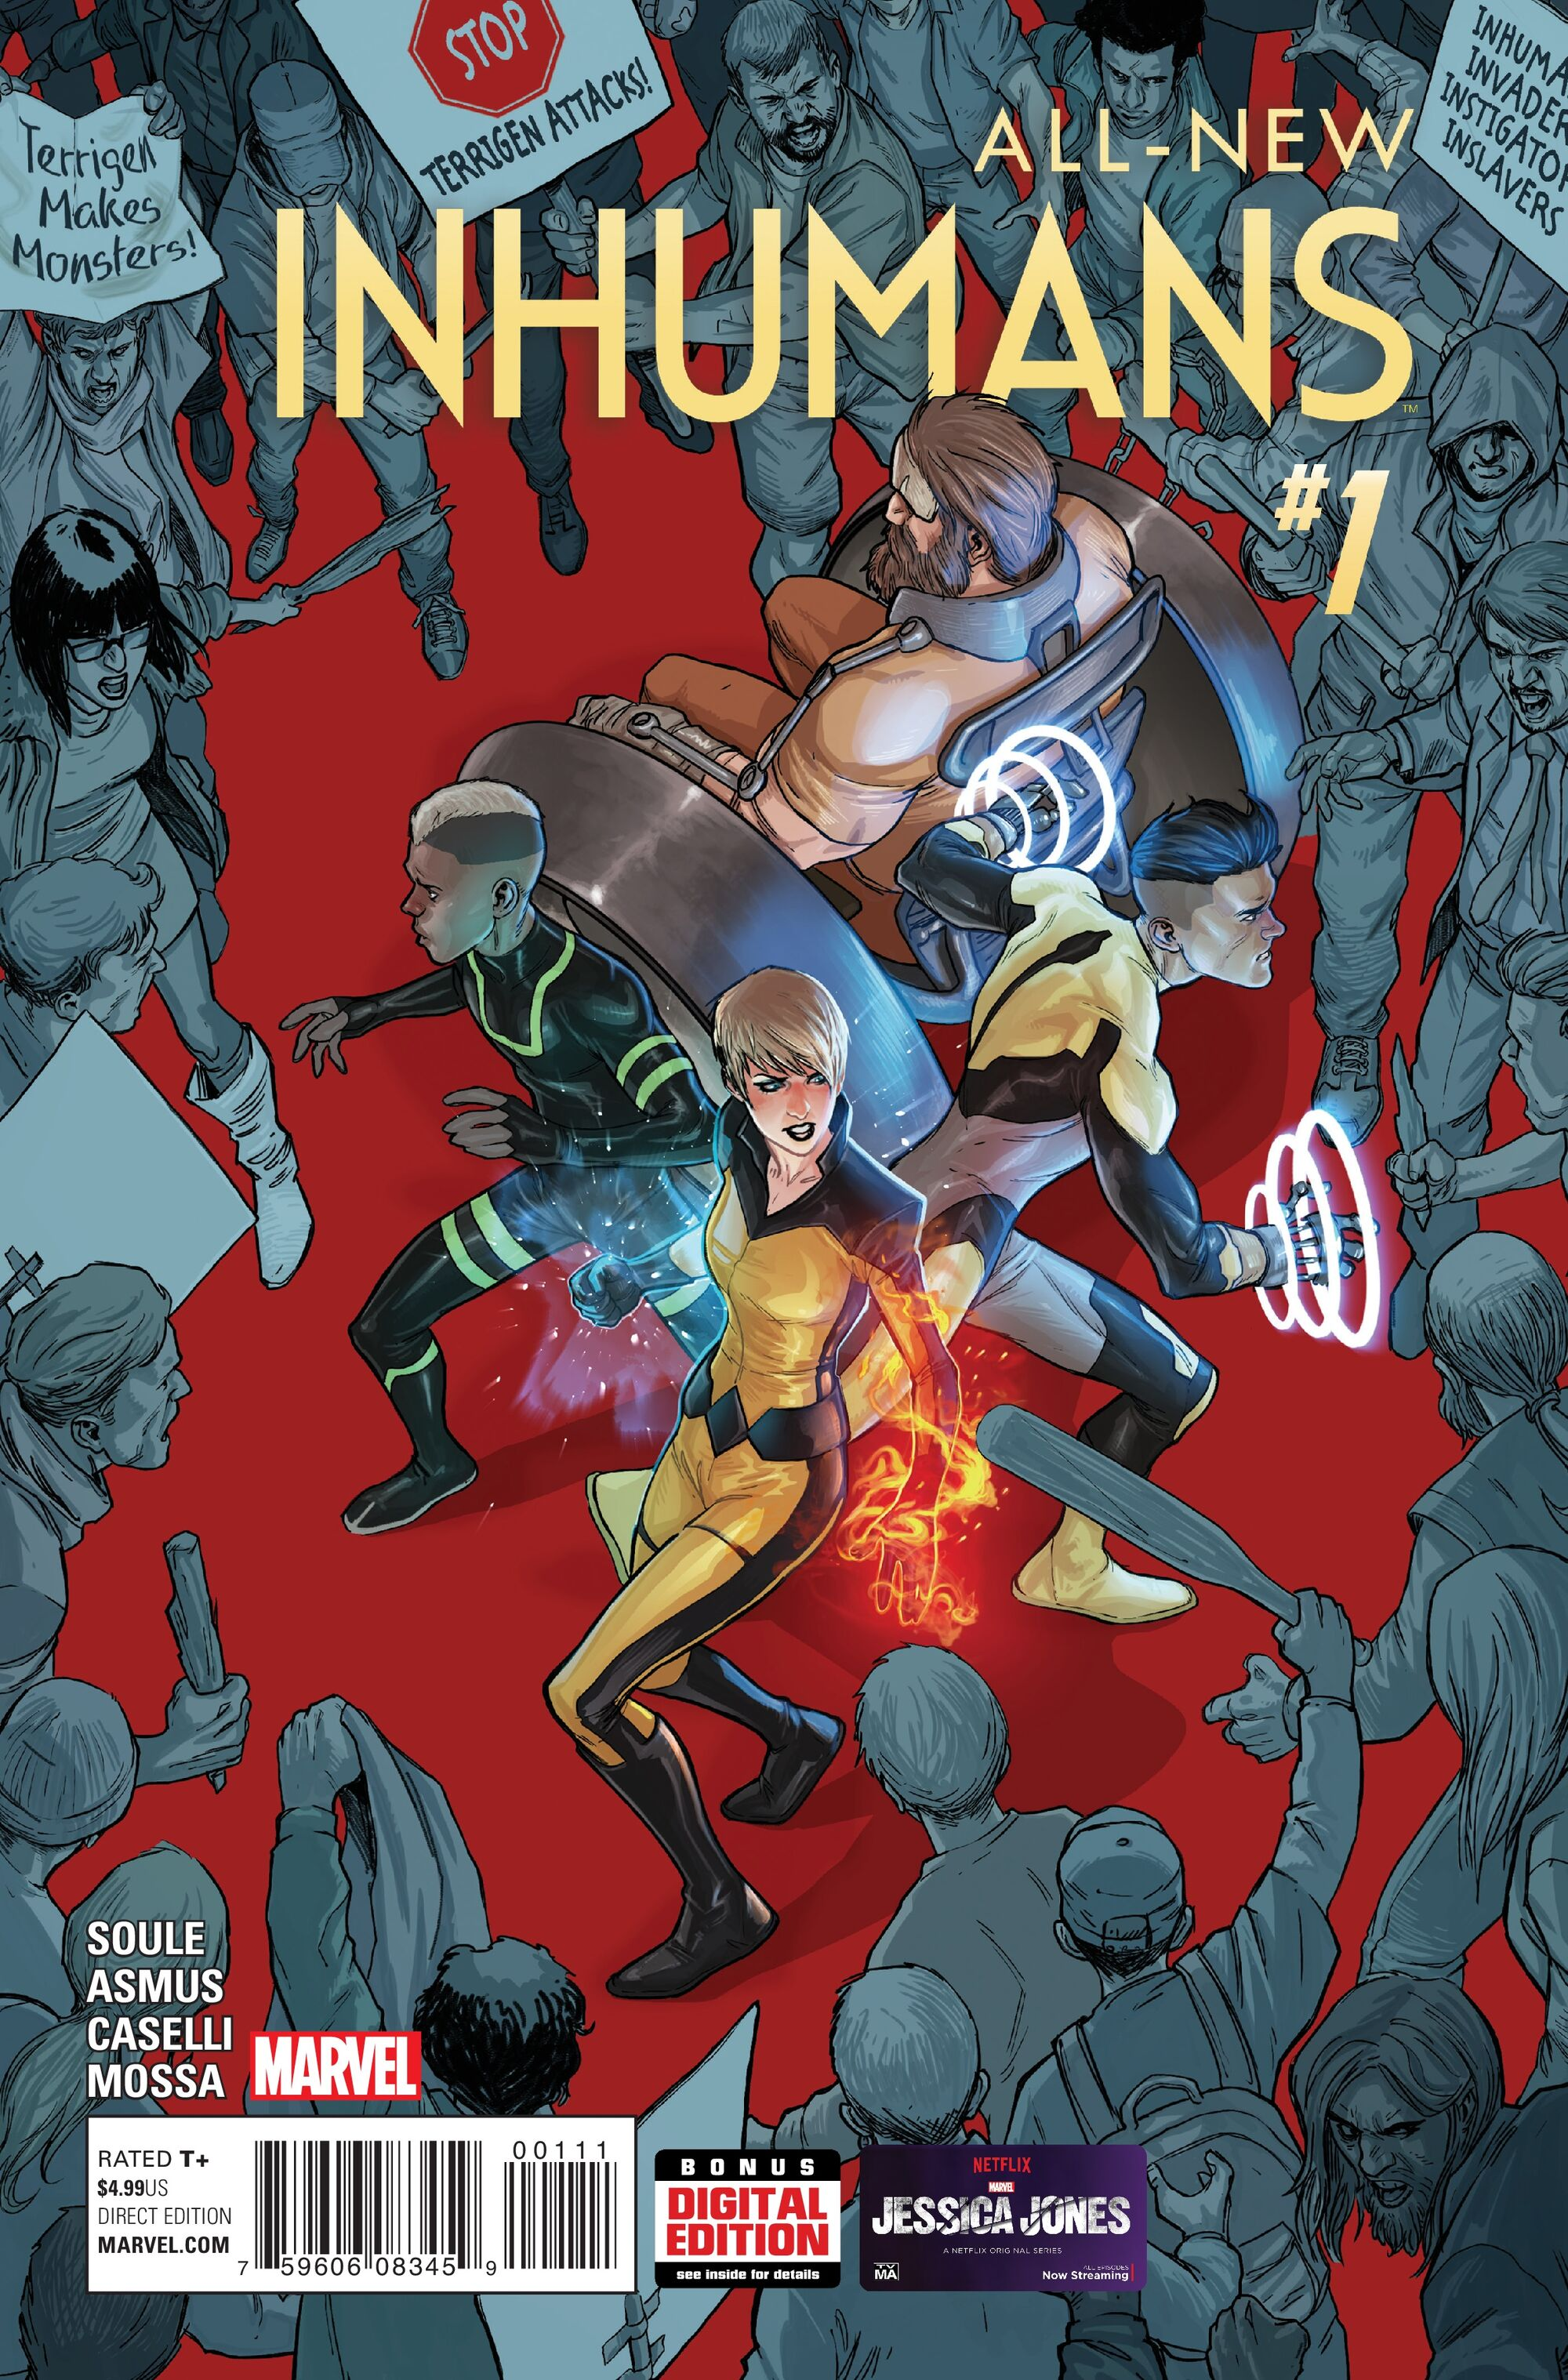 All New All Different Avengers Vol 1 2: All-New Inhumans Vol 1 1